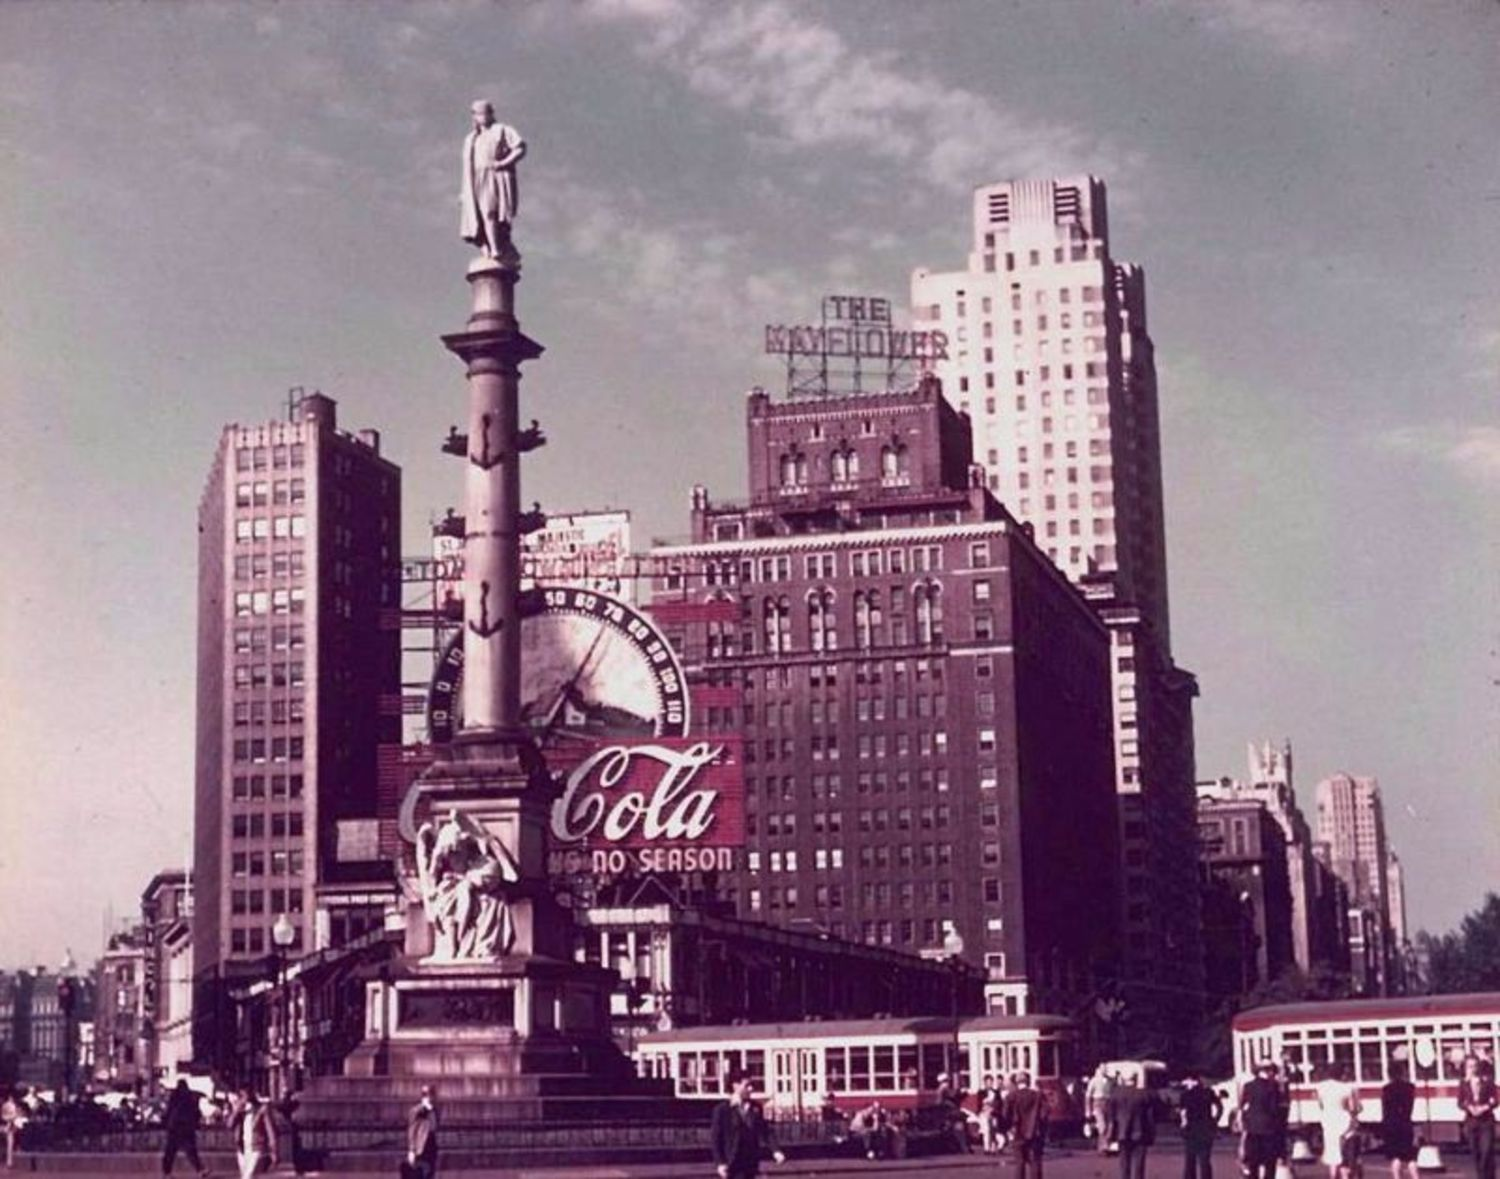 Columbus Circle, New York City, 1952